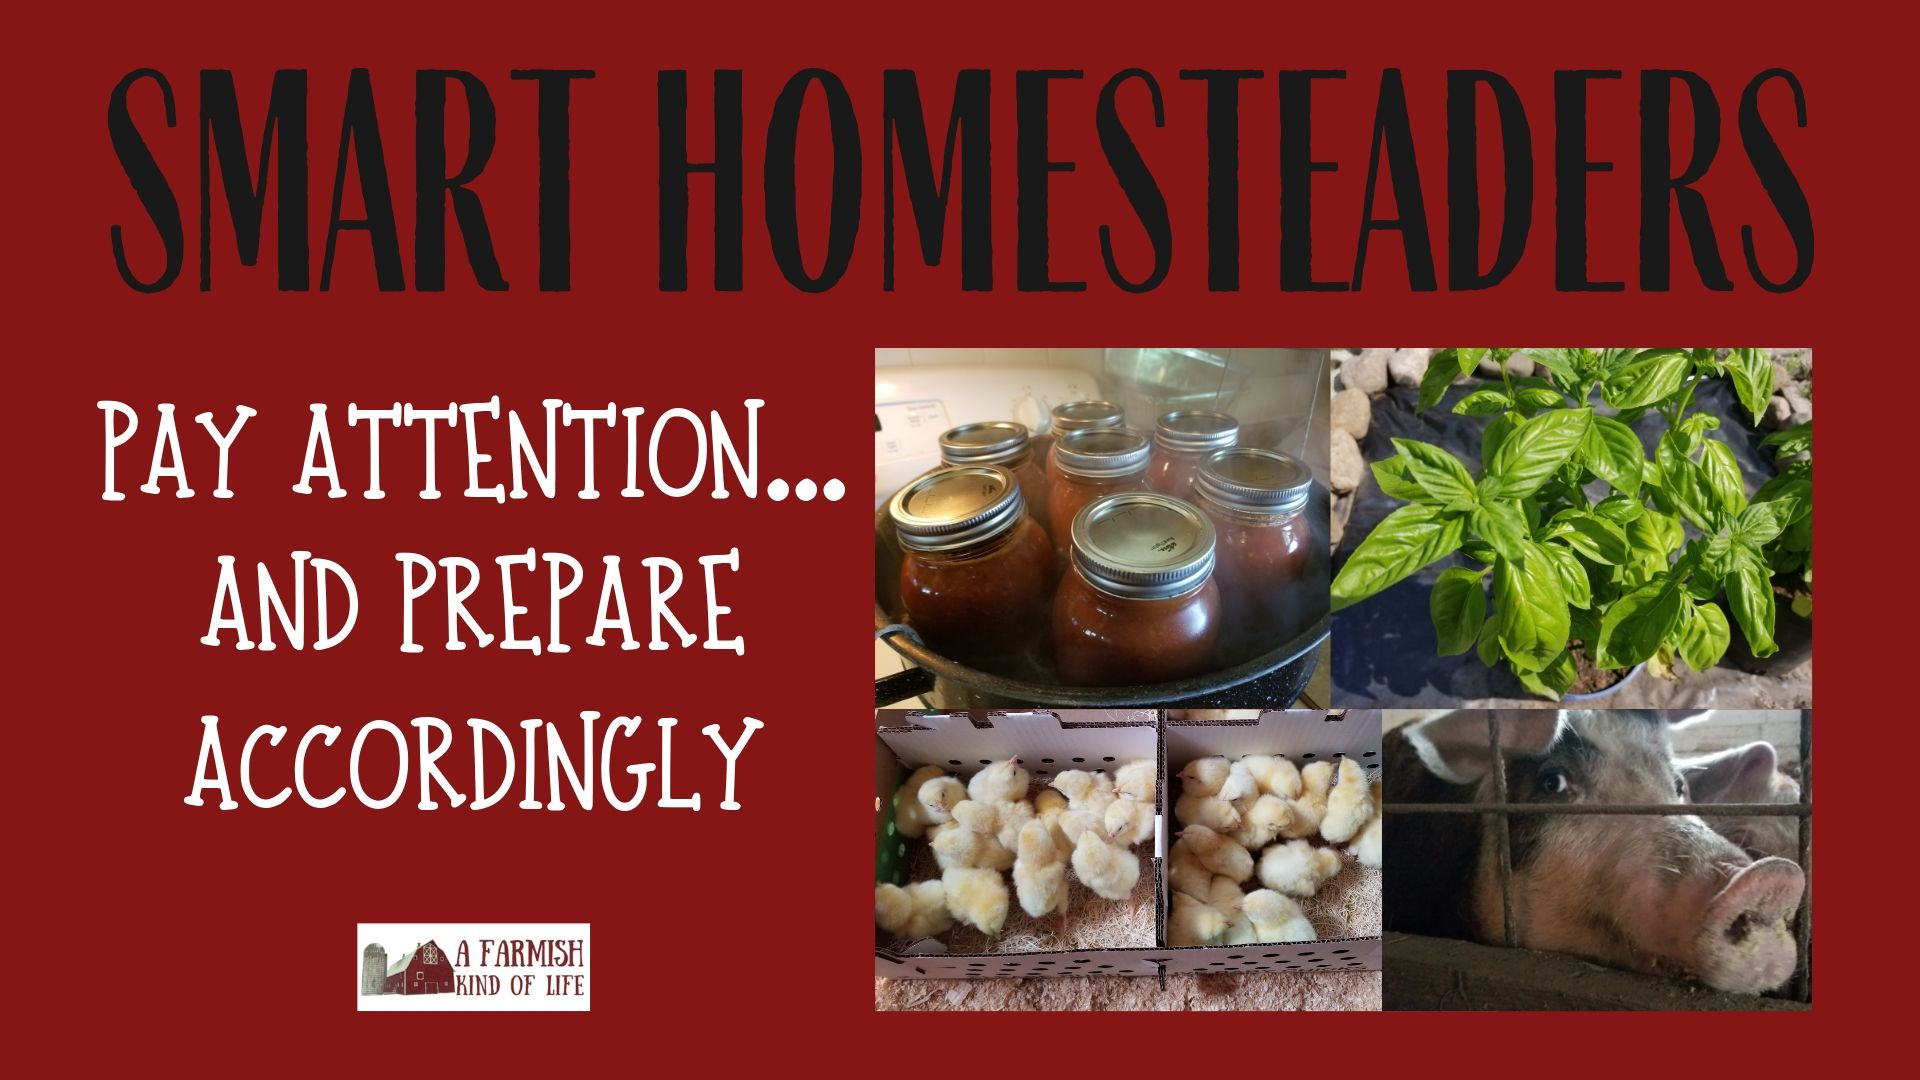 058: Smart Homesteaders Pay Attention…and Prepare Accordingly